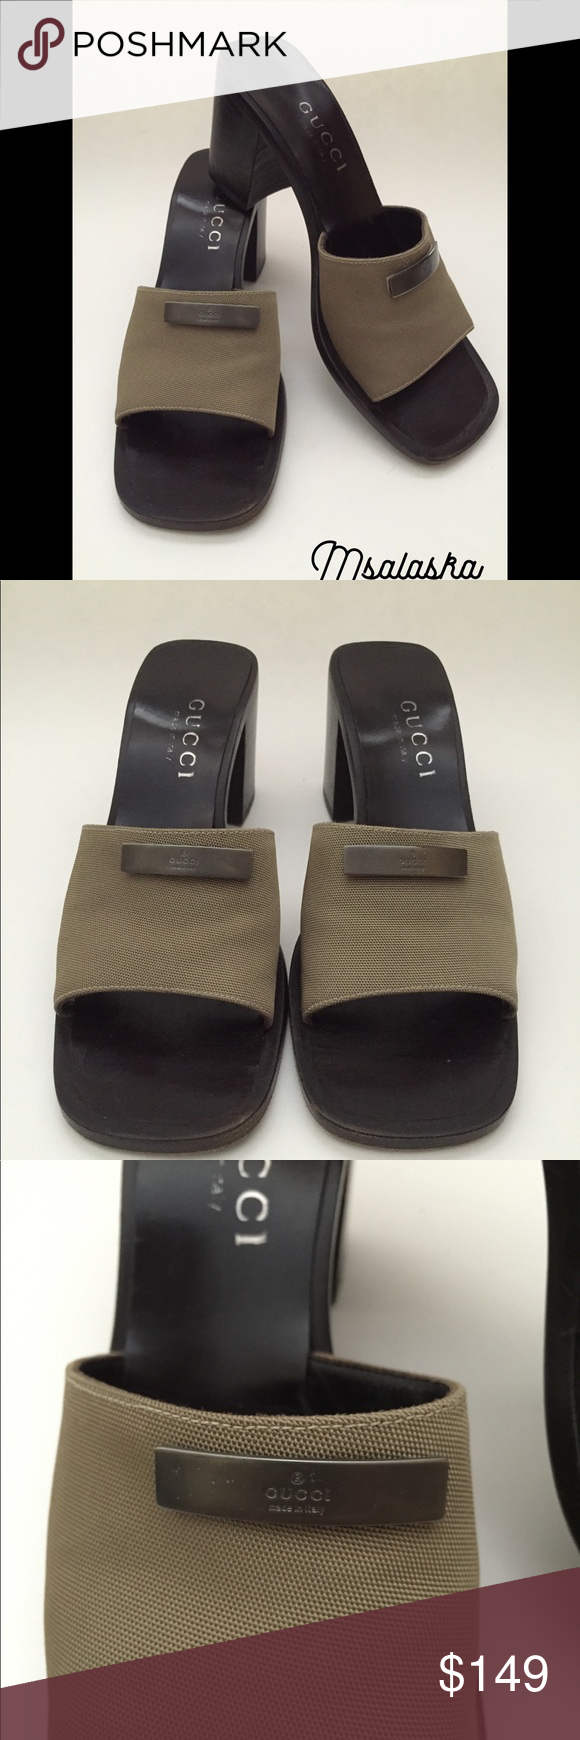 b43eb59922c Gucci Slides Mules Brown Gucci Slip On Mules. Authentic. Size 5 1